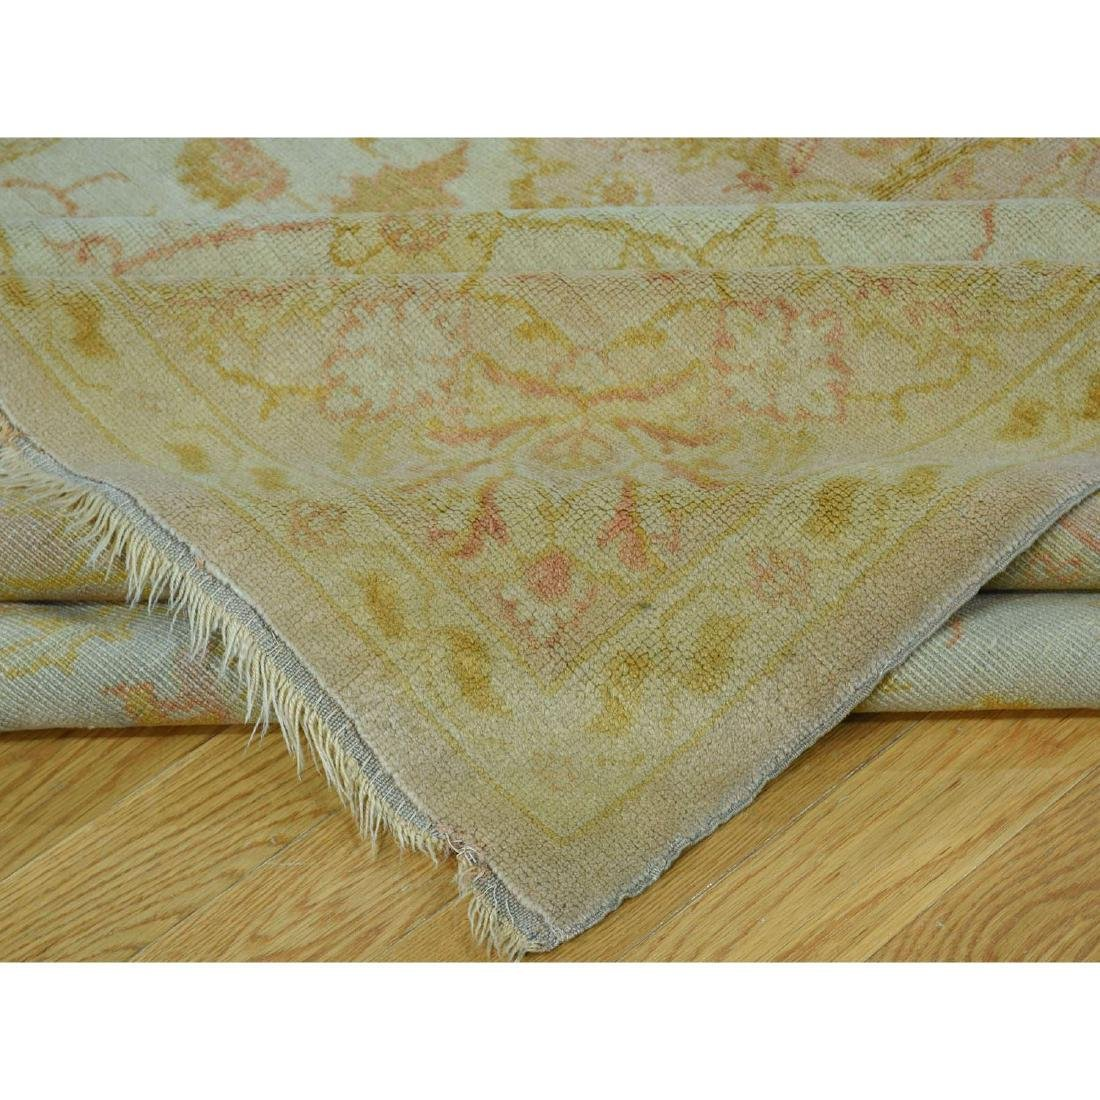 Hand-Knotted Antique Turkish Oushak Soft Colors - 7